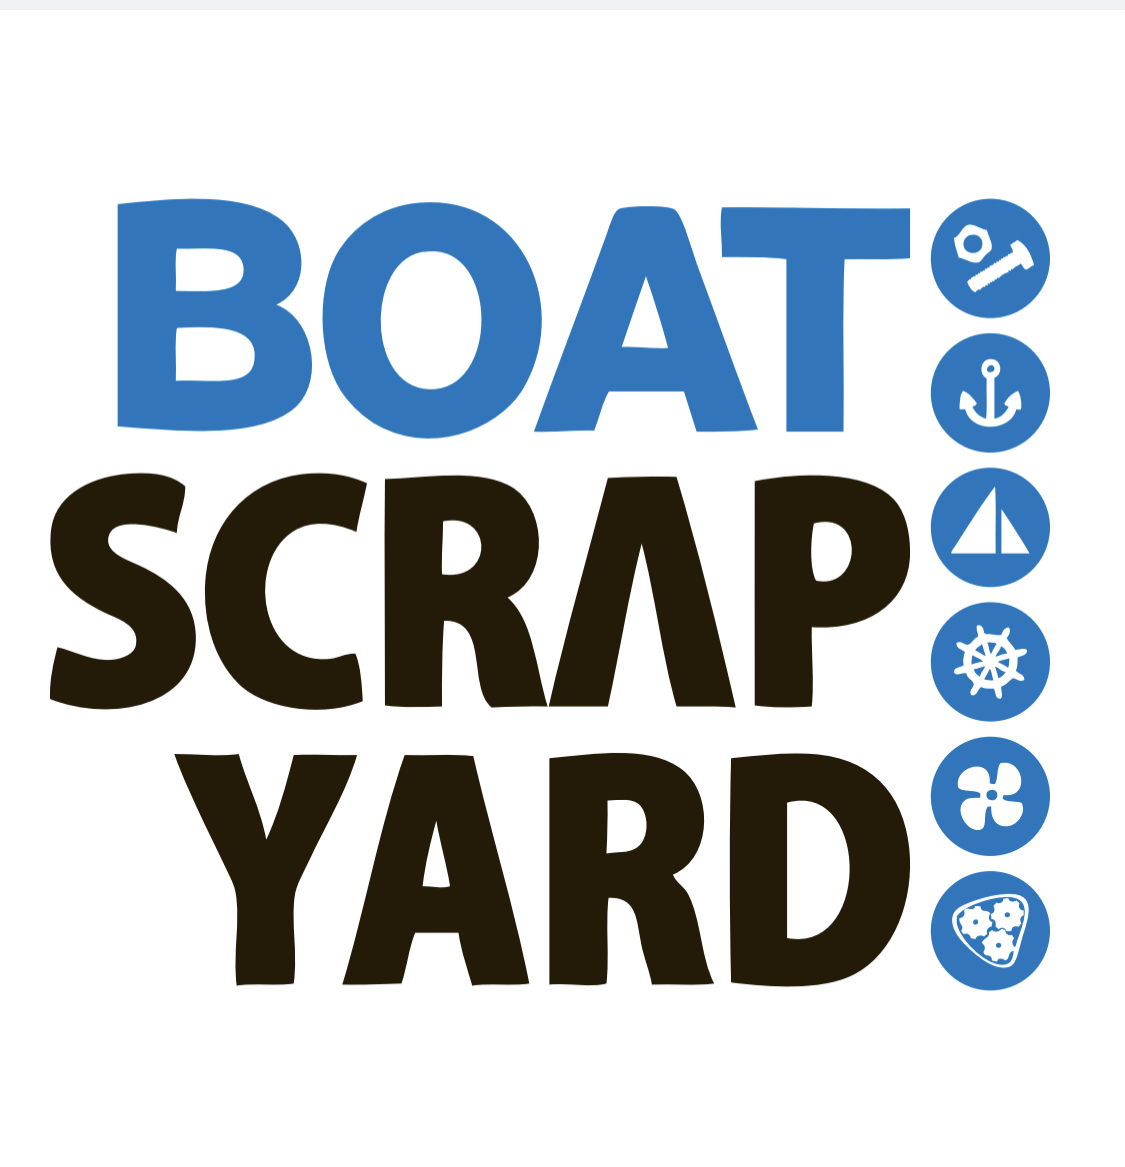 Boat Scrapyard Finally Joins Instagram